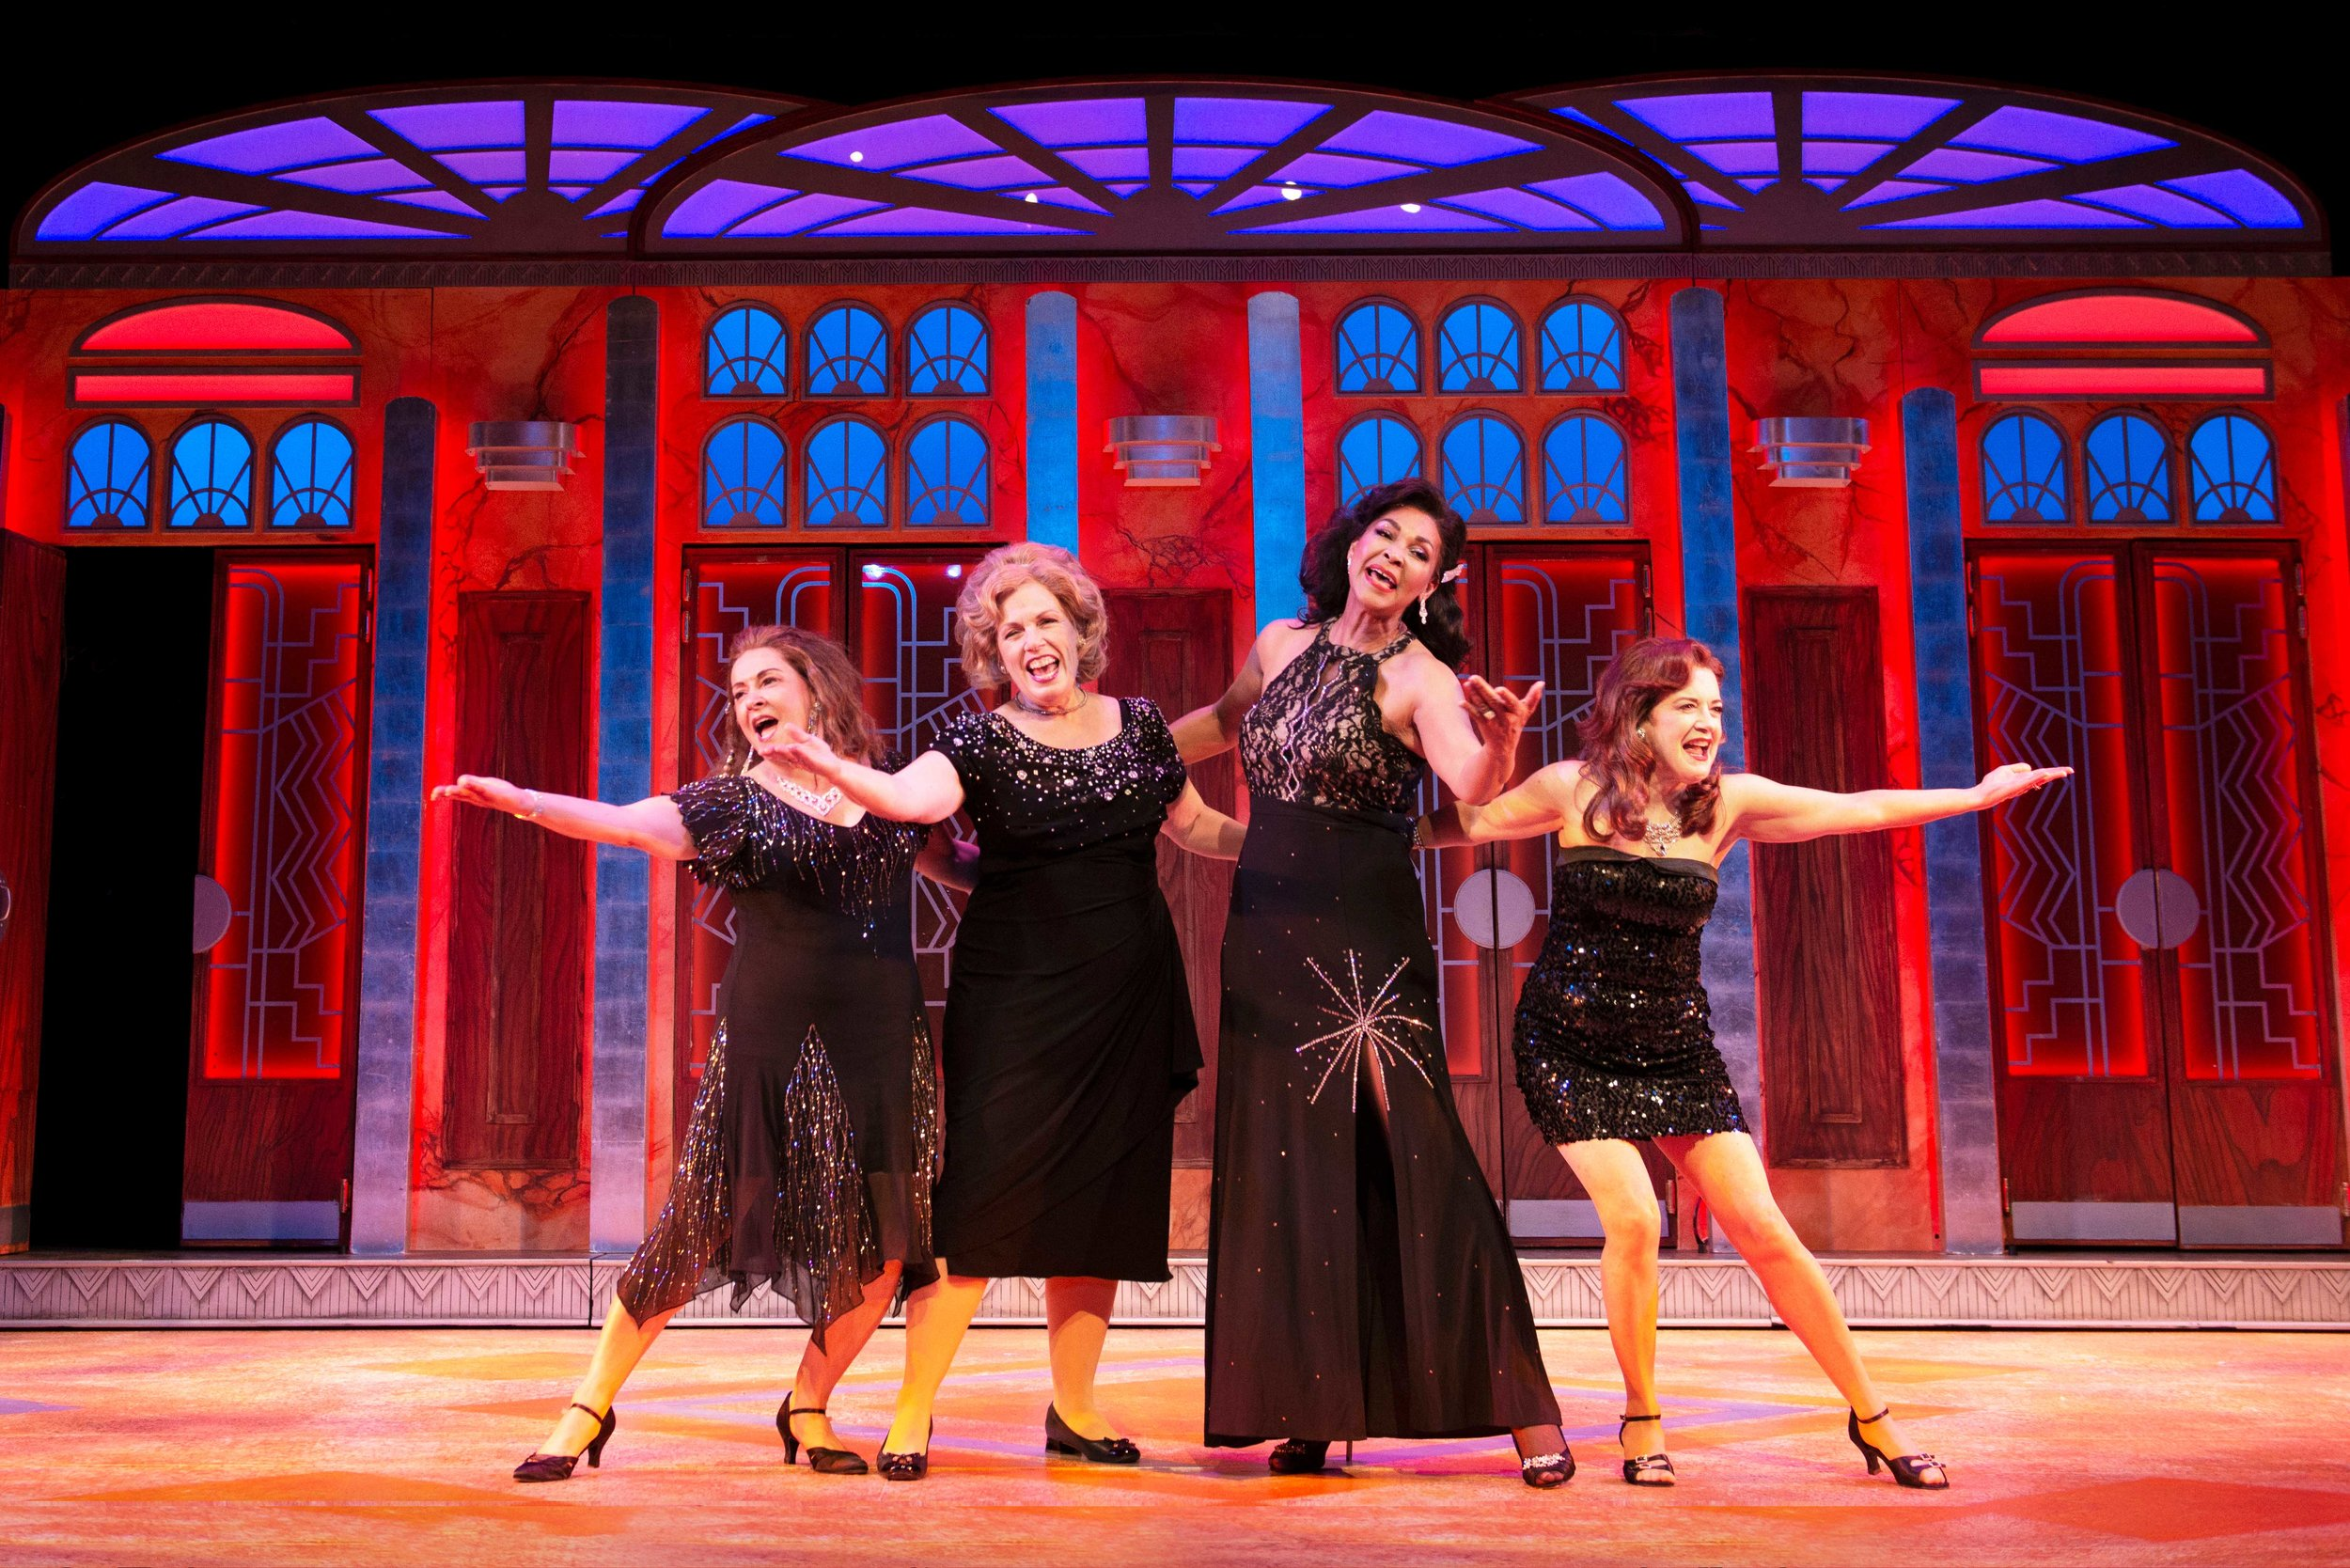 Melanie Souza, Roberta B. Wall, Anise Ritchie, and Kathy St. George in Menopause The Musical® (2019) Photo by Gary Ng